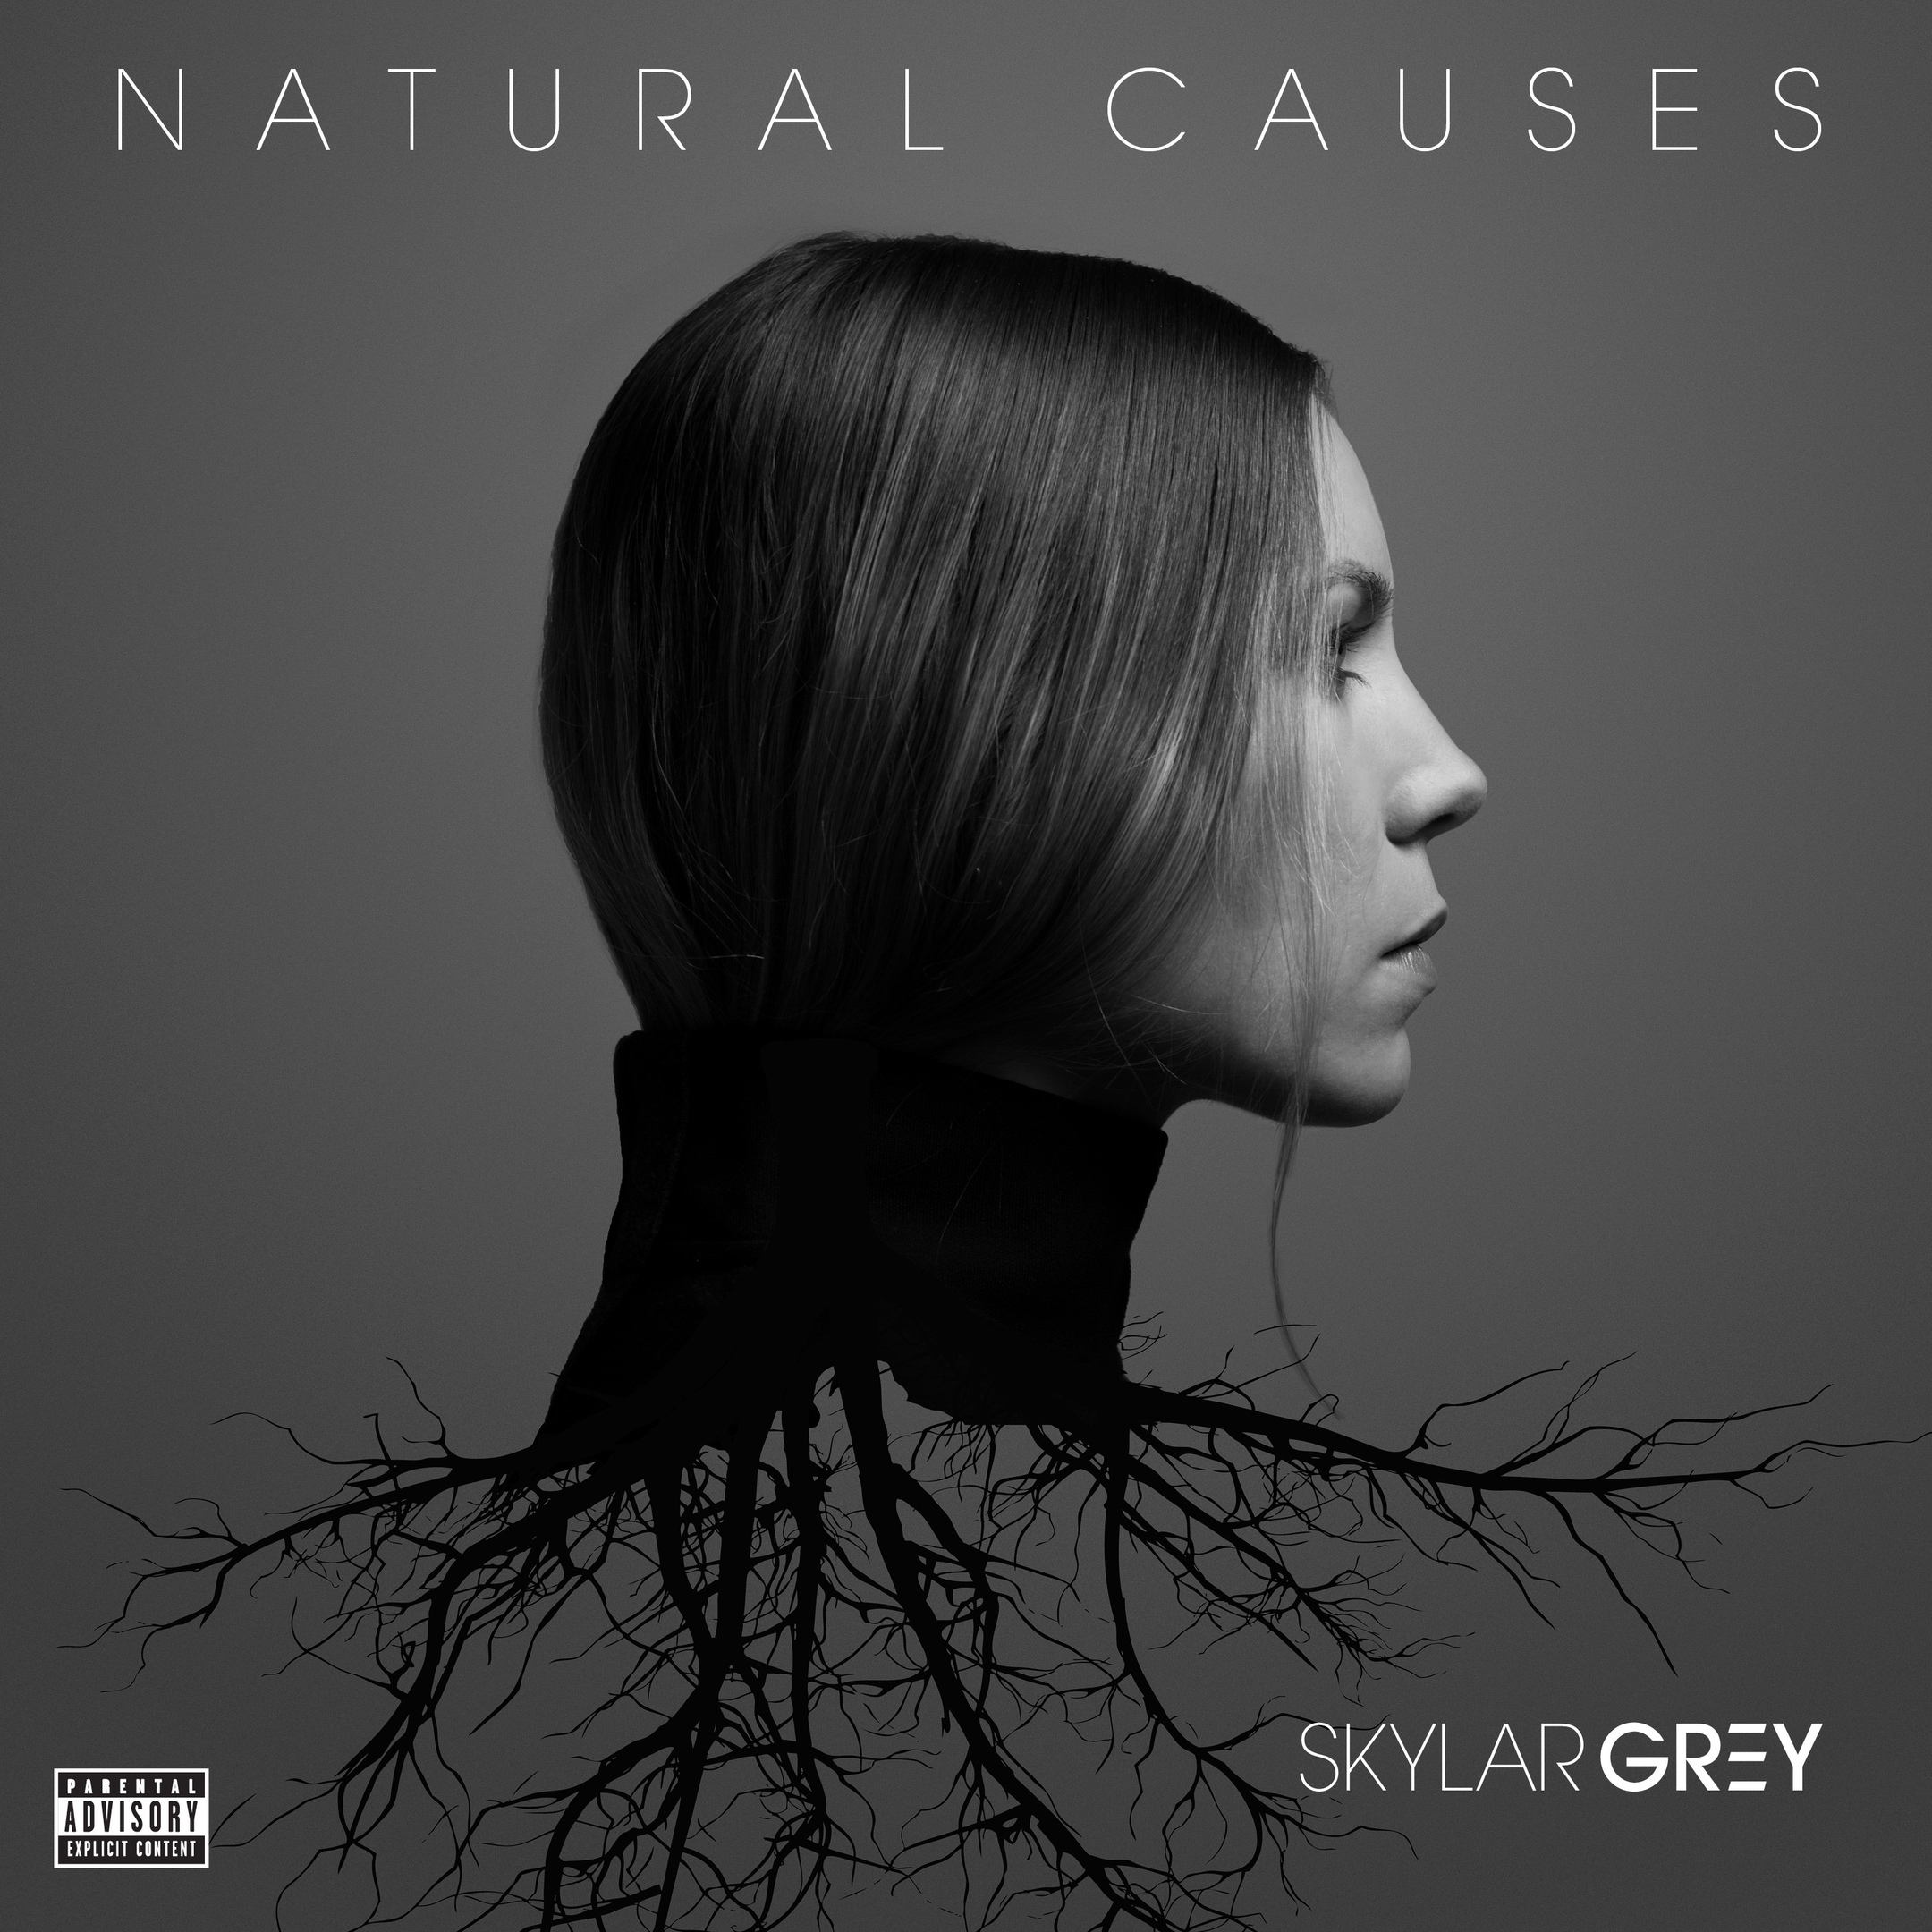 Skylar Grey album Natural Causes